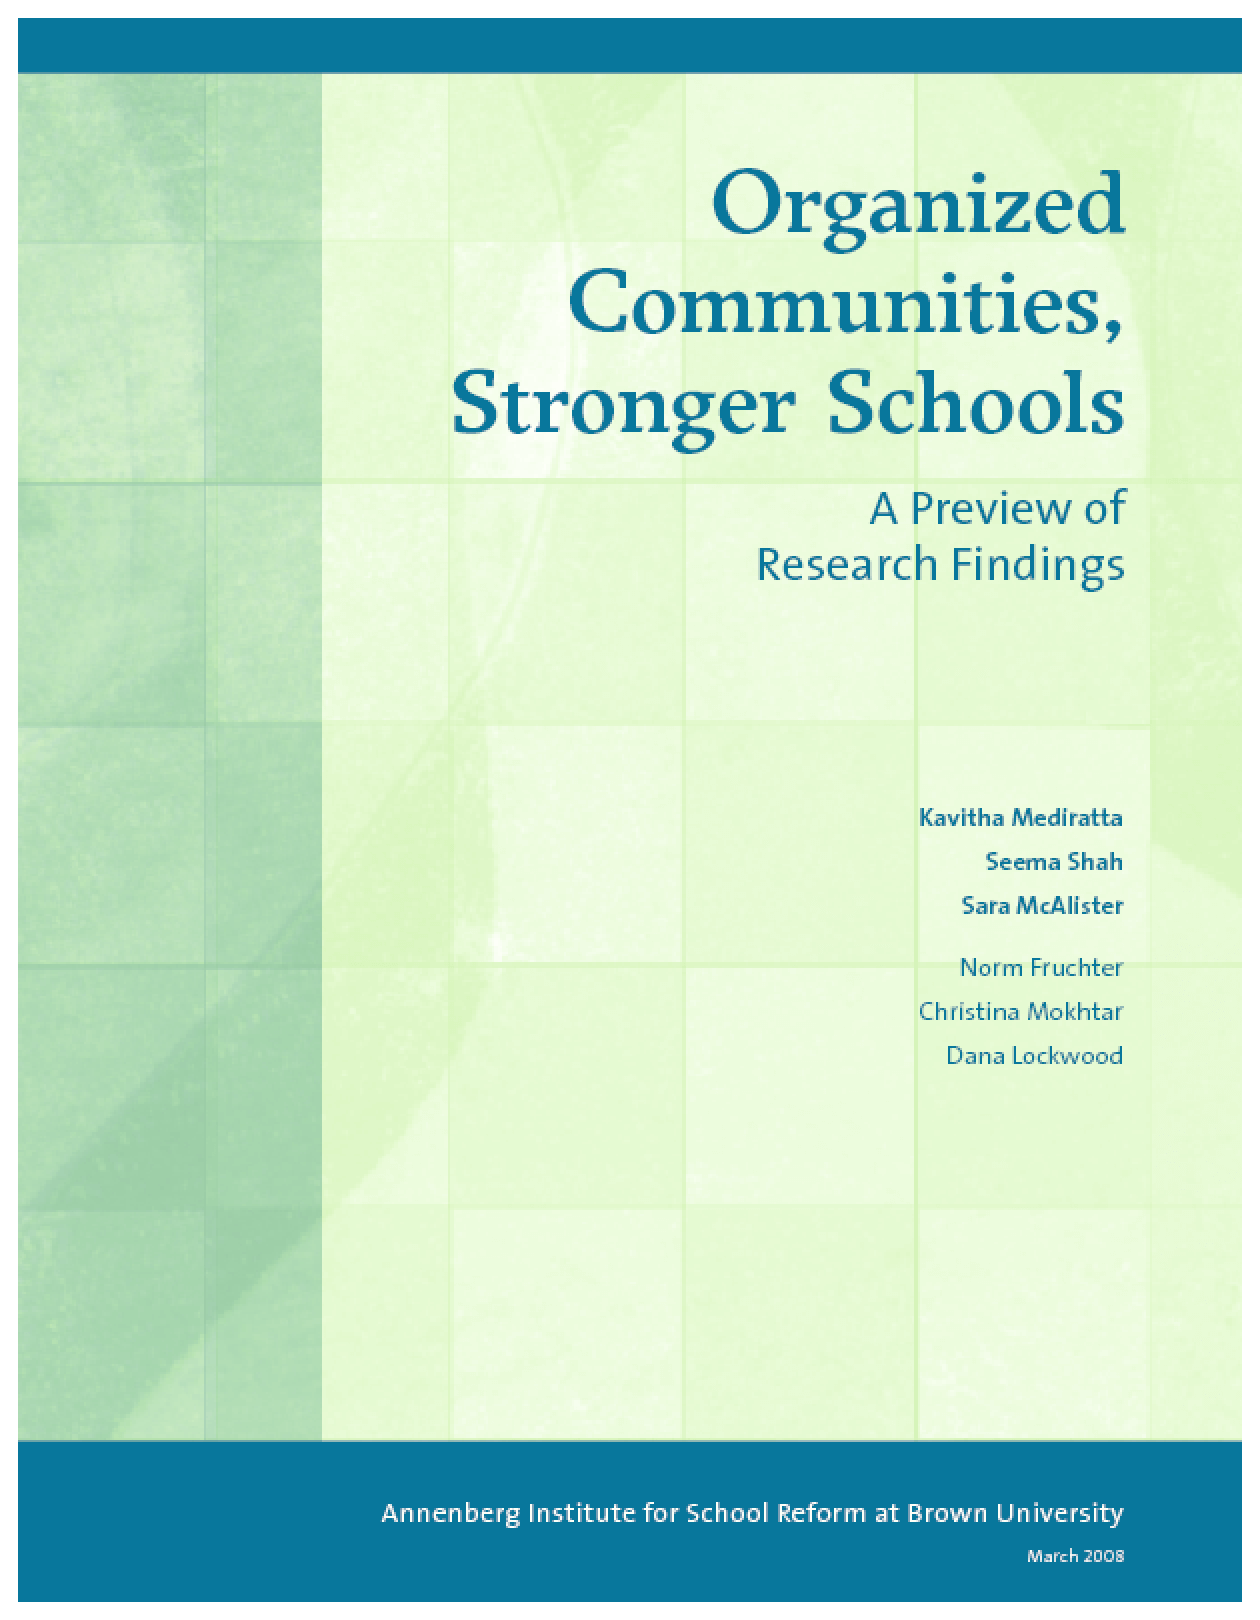 Organized Communities, Stronger Schools: A Preview of Research Findings